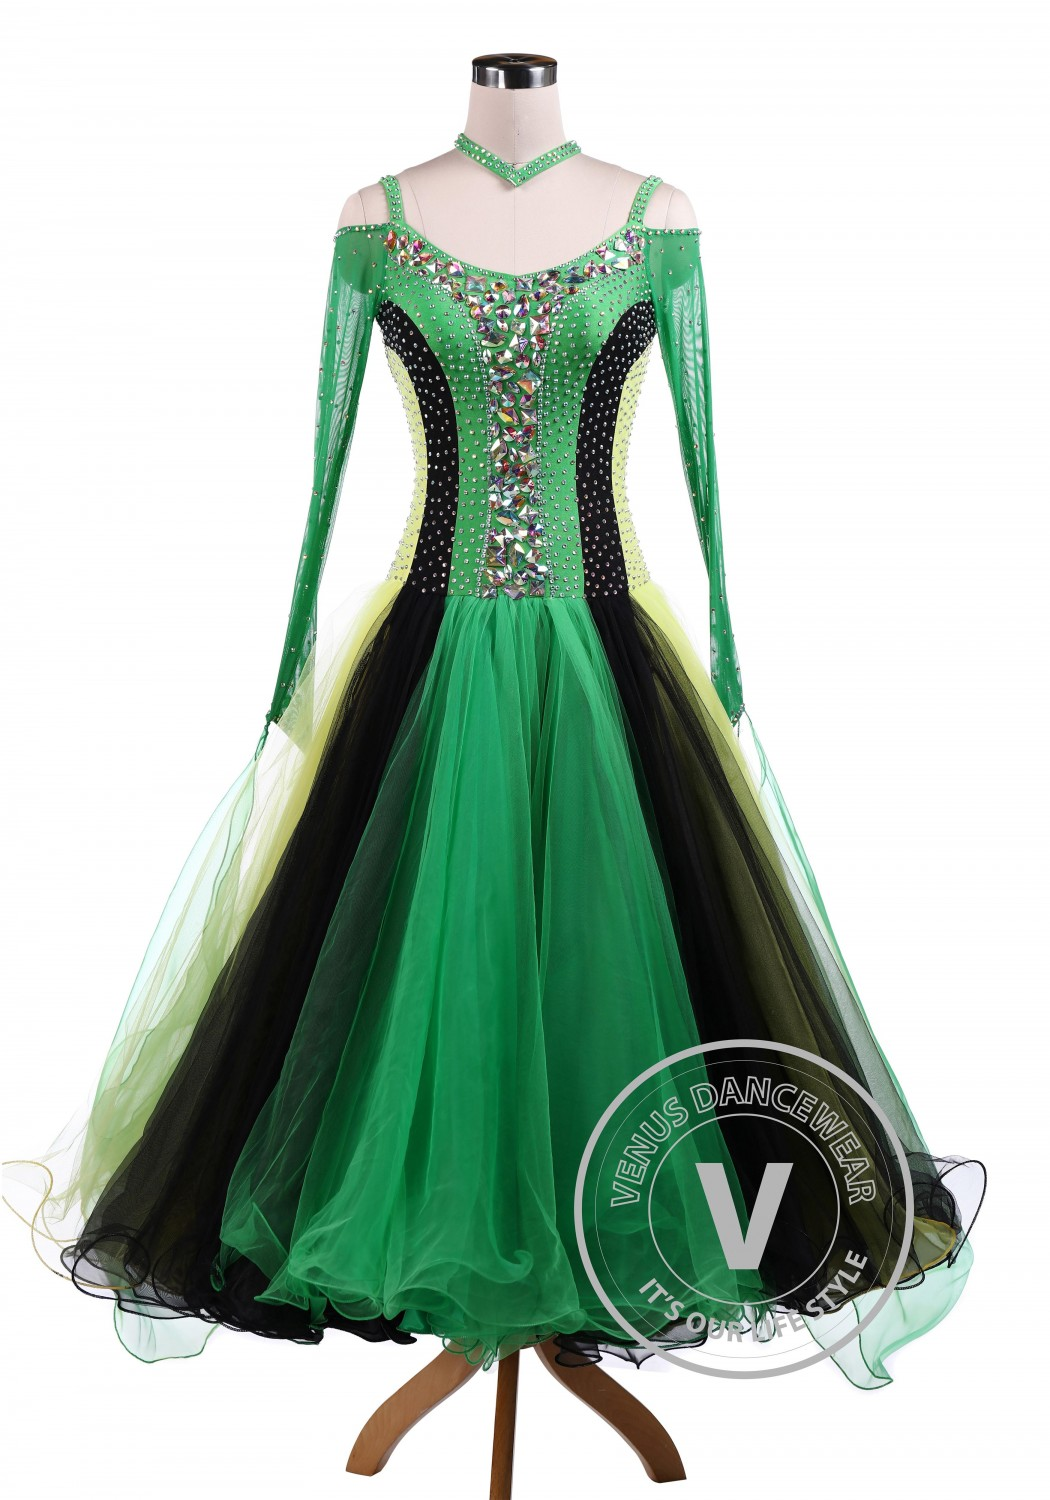 Green Tricolore Standard Ballroom Tango Waltz Competition Dance Dress